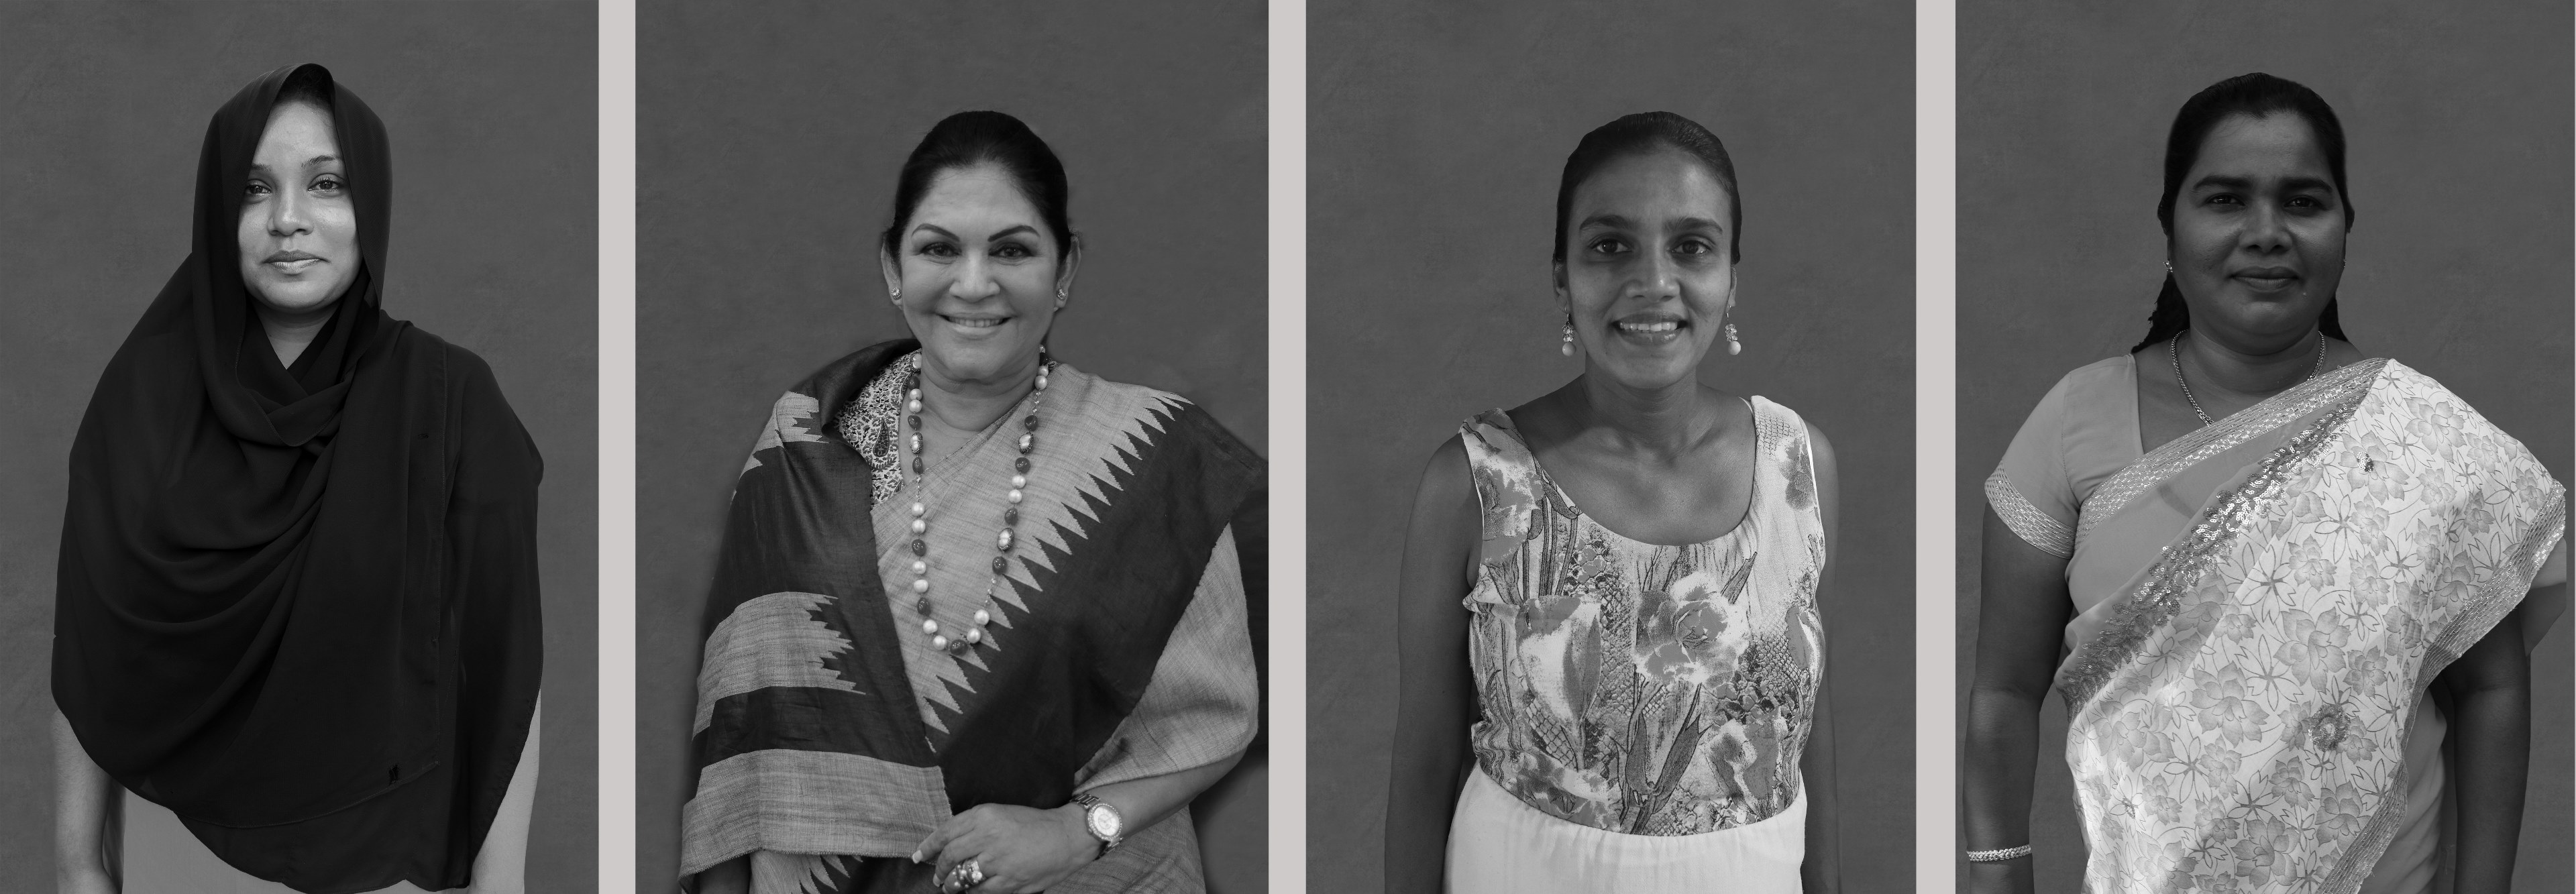 An uneven playing field for female candidates in Sri Lanka